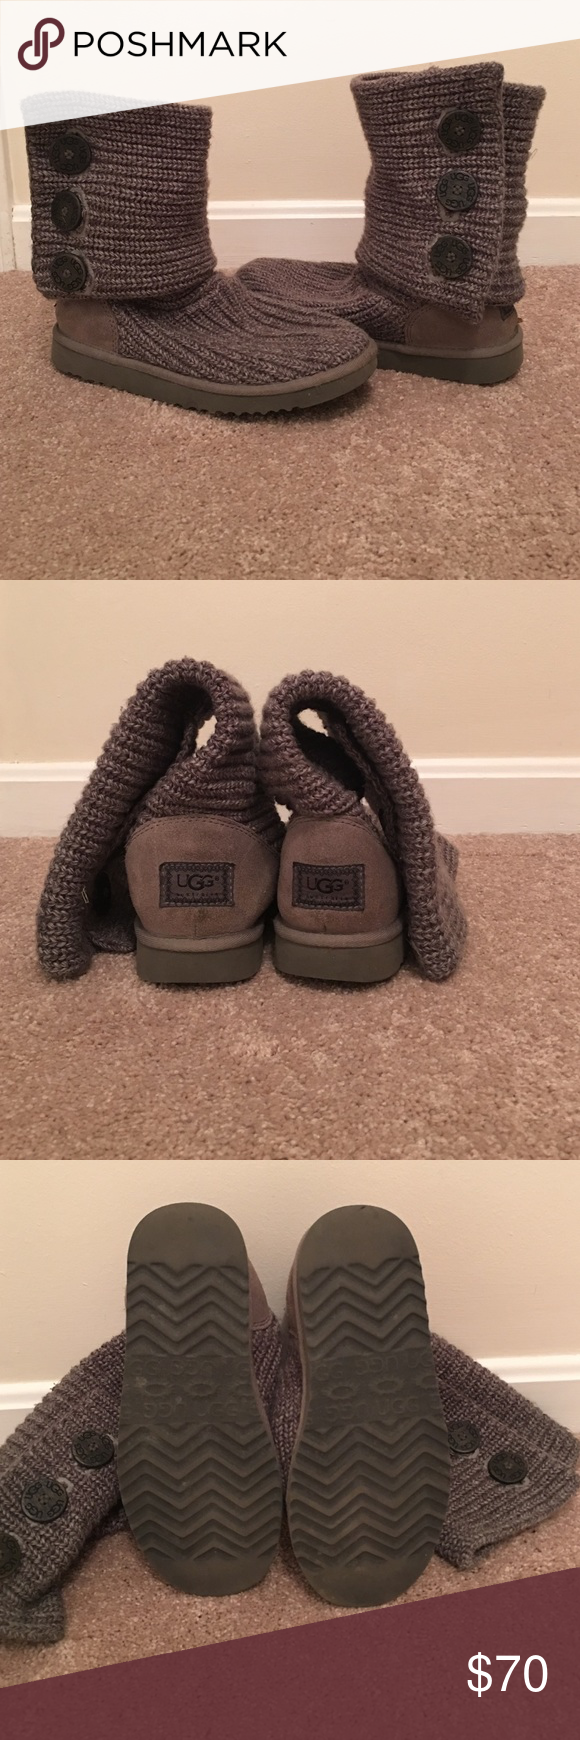 Gray cardy UGG boots. Gray cardy UGG boots. Super comfy and great for colder weather. UGG Shoes Winter & Rain Boots